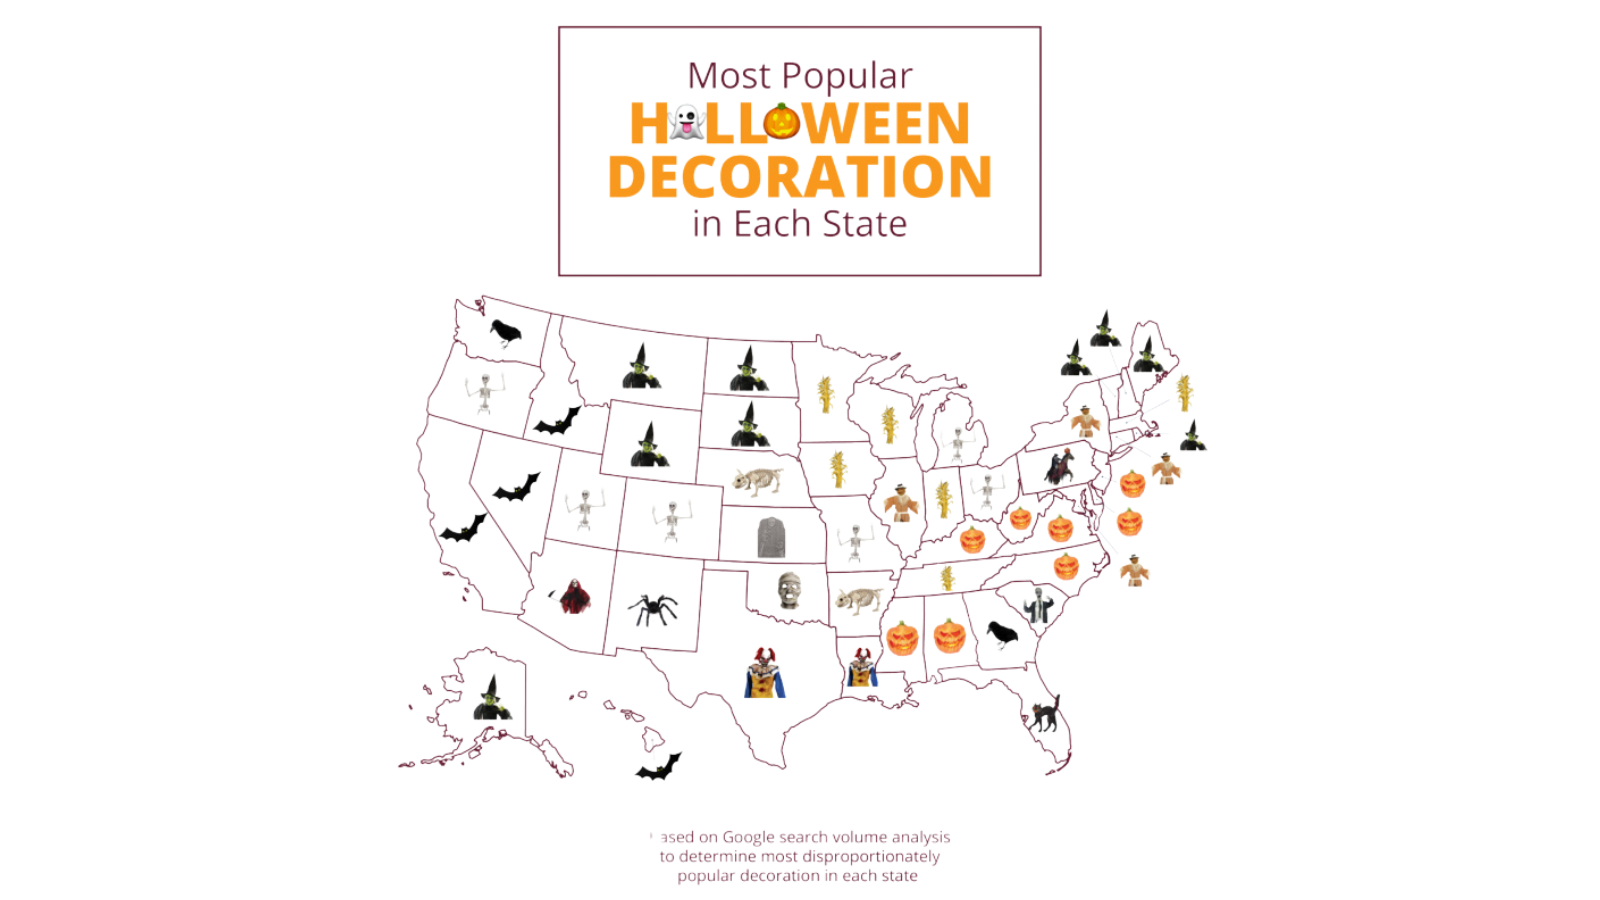 A map shows which types of Halloween decorations are most popular in each state.